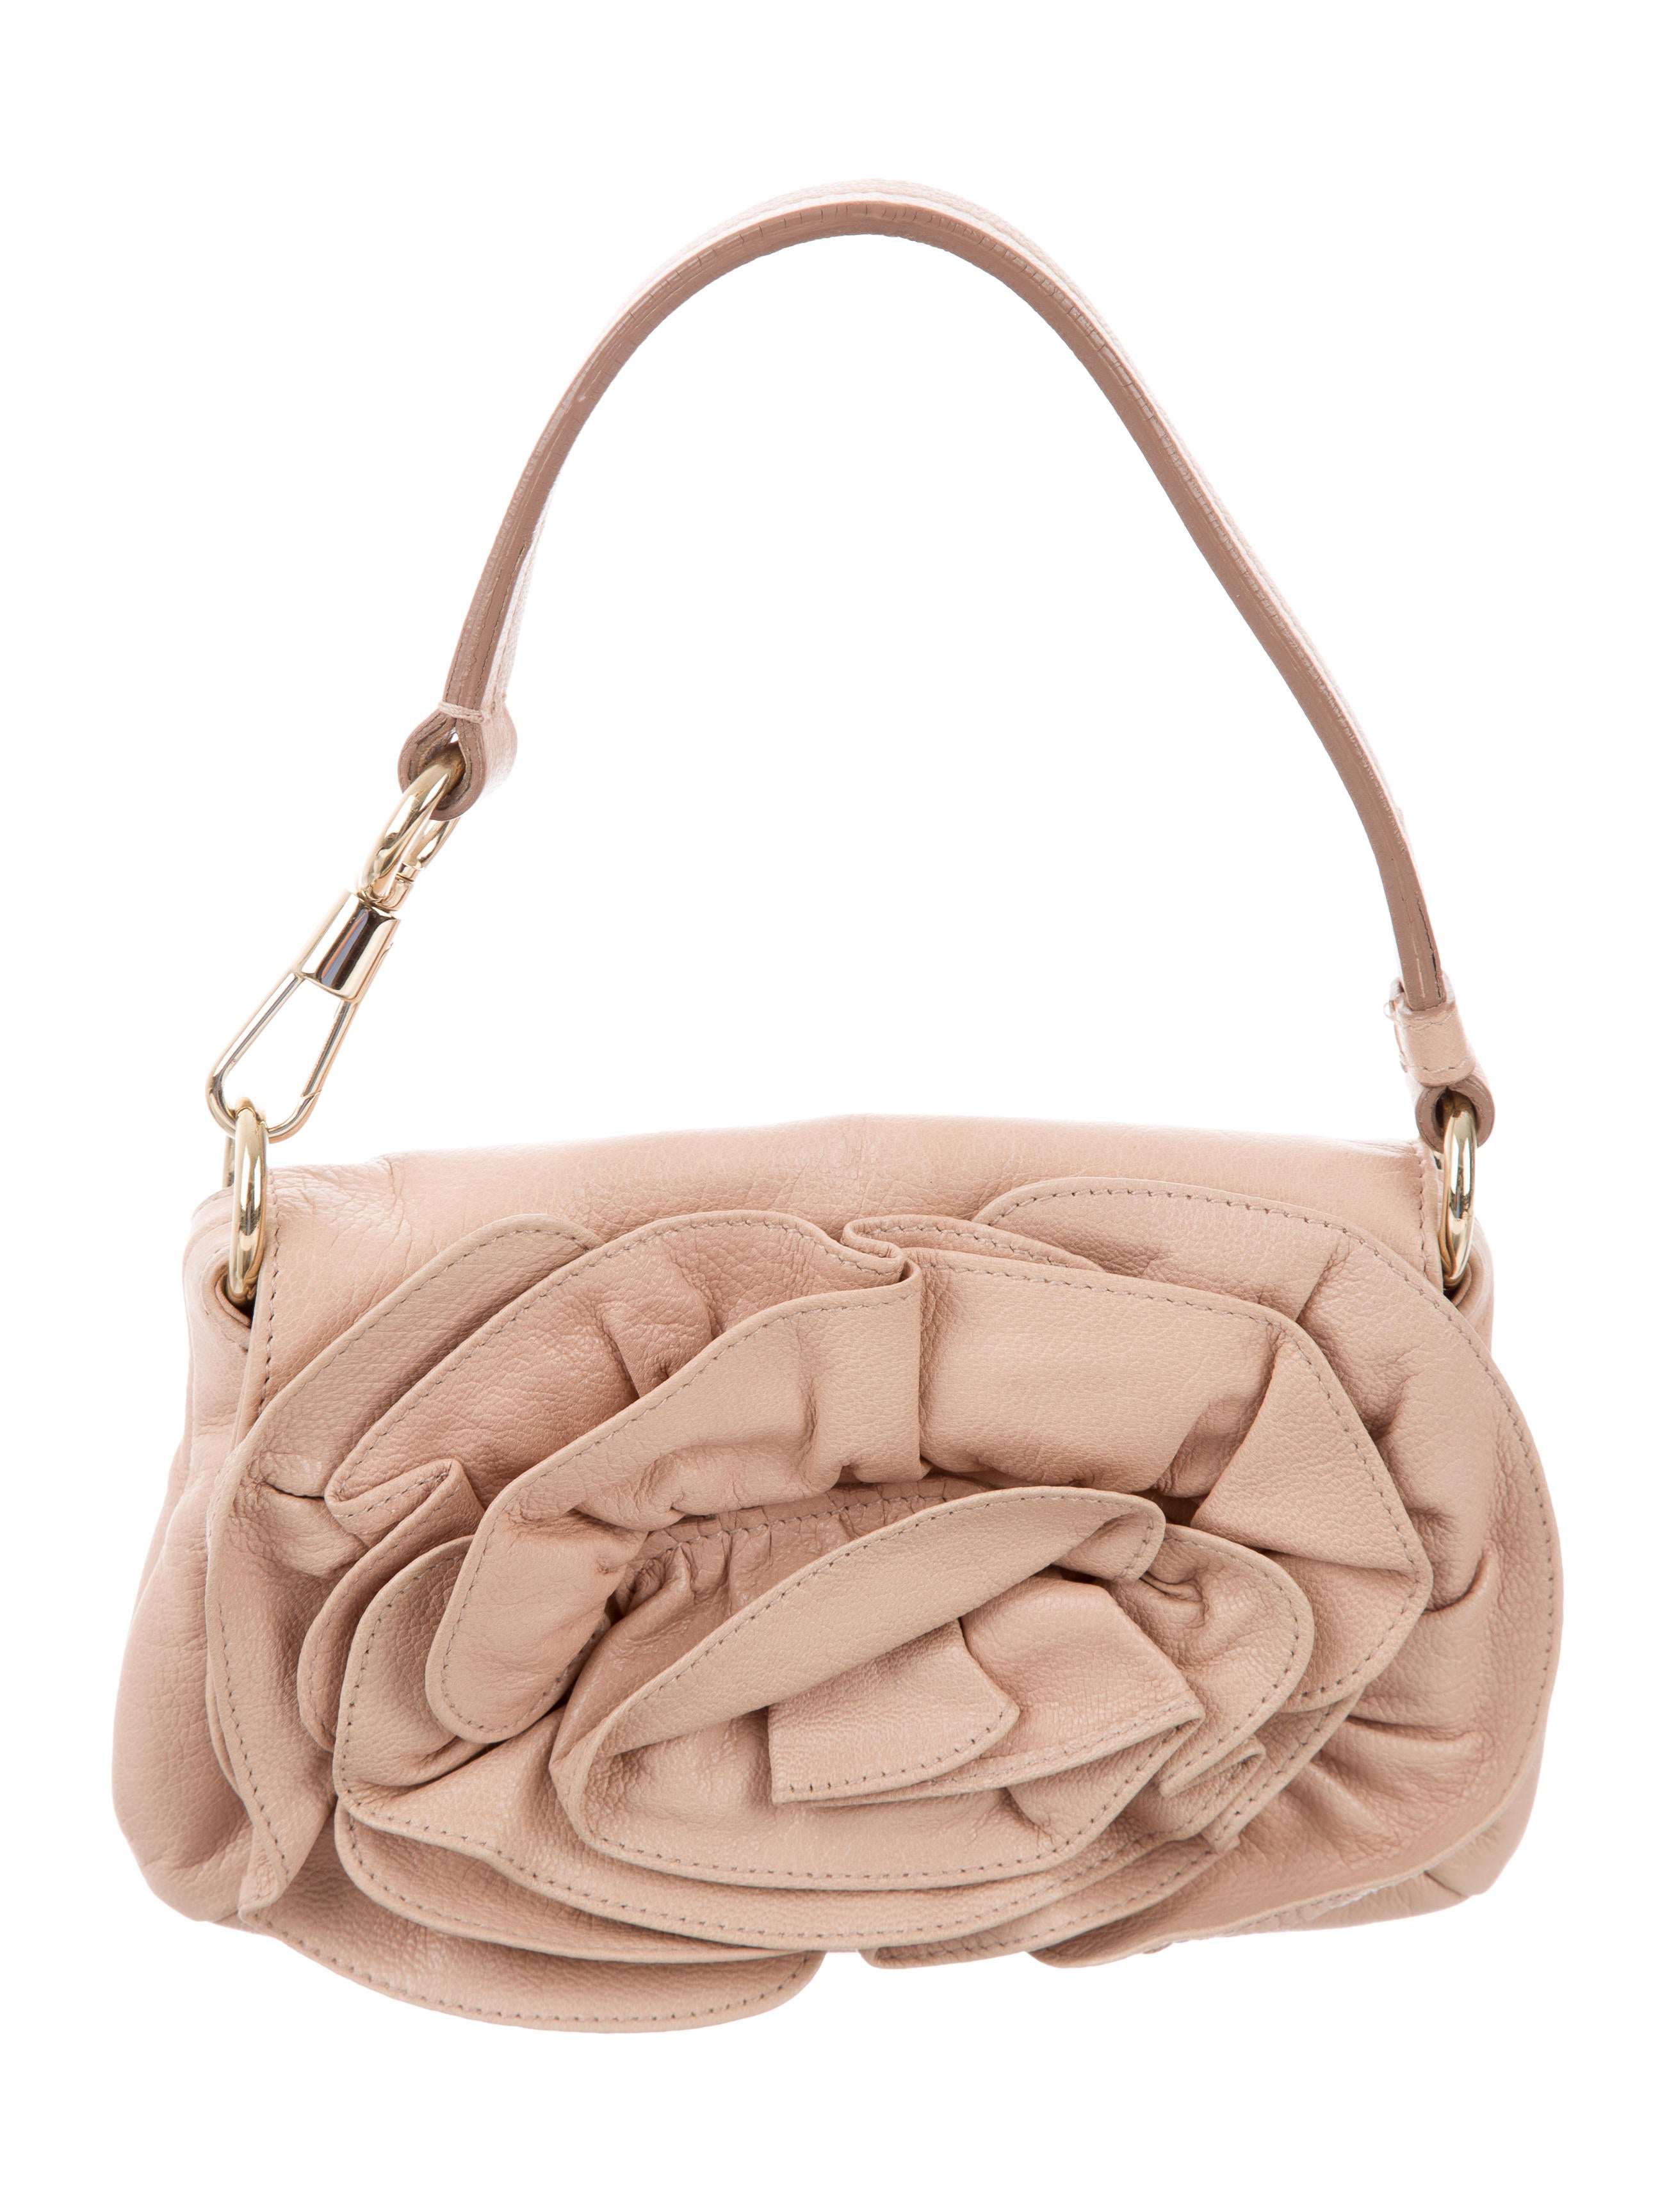 4753aae7fe Yves Saint Laurent Mini Nadja Rose Bag - Handbags .